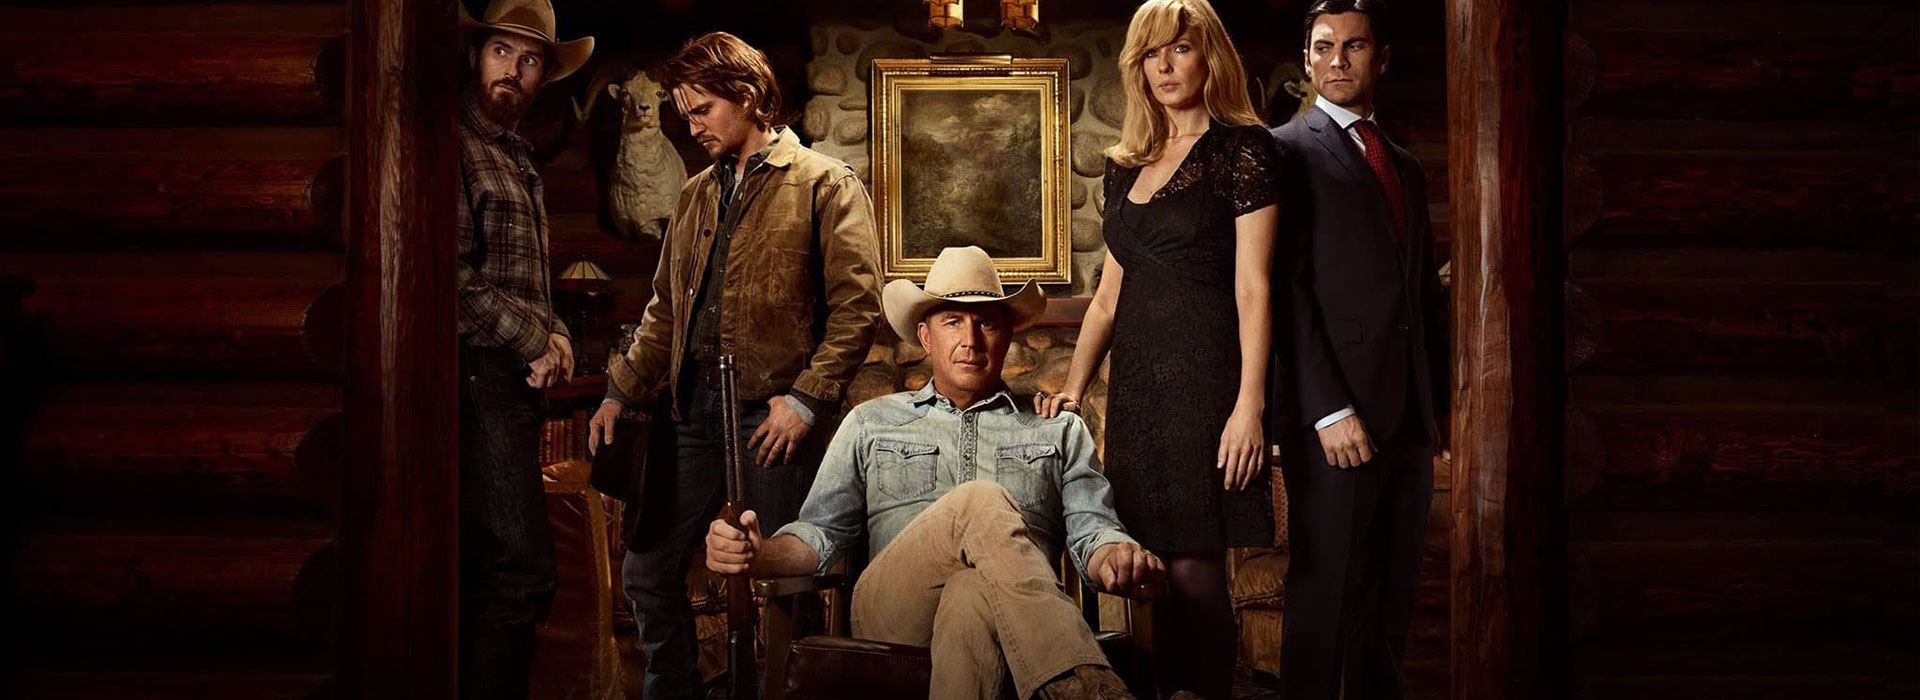 黄石 第三季 Yellowstone Season 3